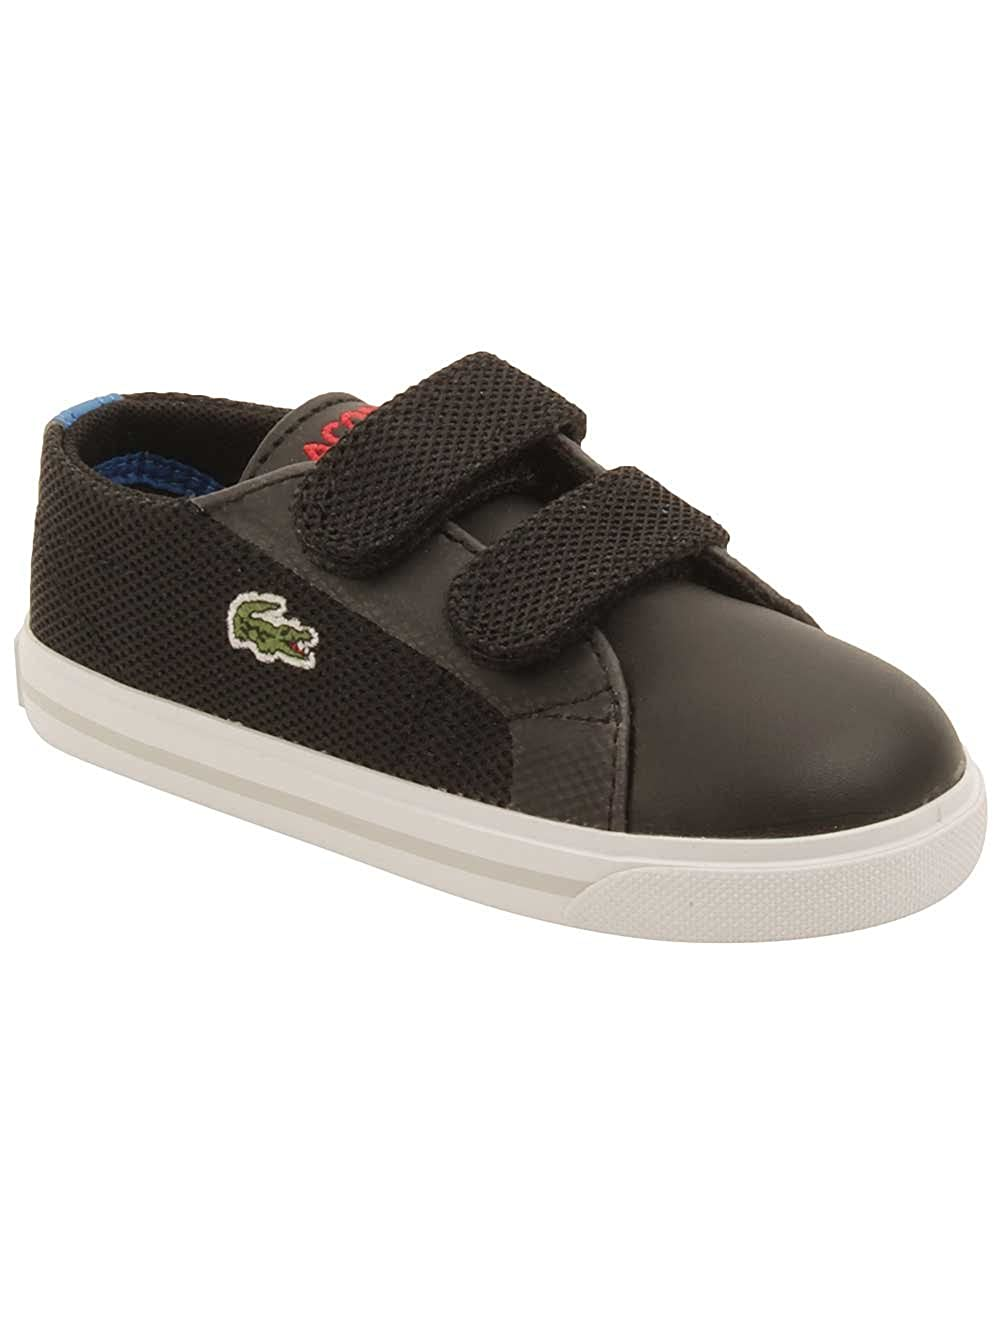 Amazon.com: LACOSTE Marcel 4161 Black/Royal Blue Sneakers 7-32SPI0121024 Infant/Toddler Shoes (4.0 M US Toddler): Shoes